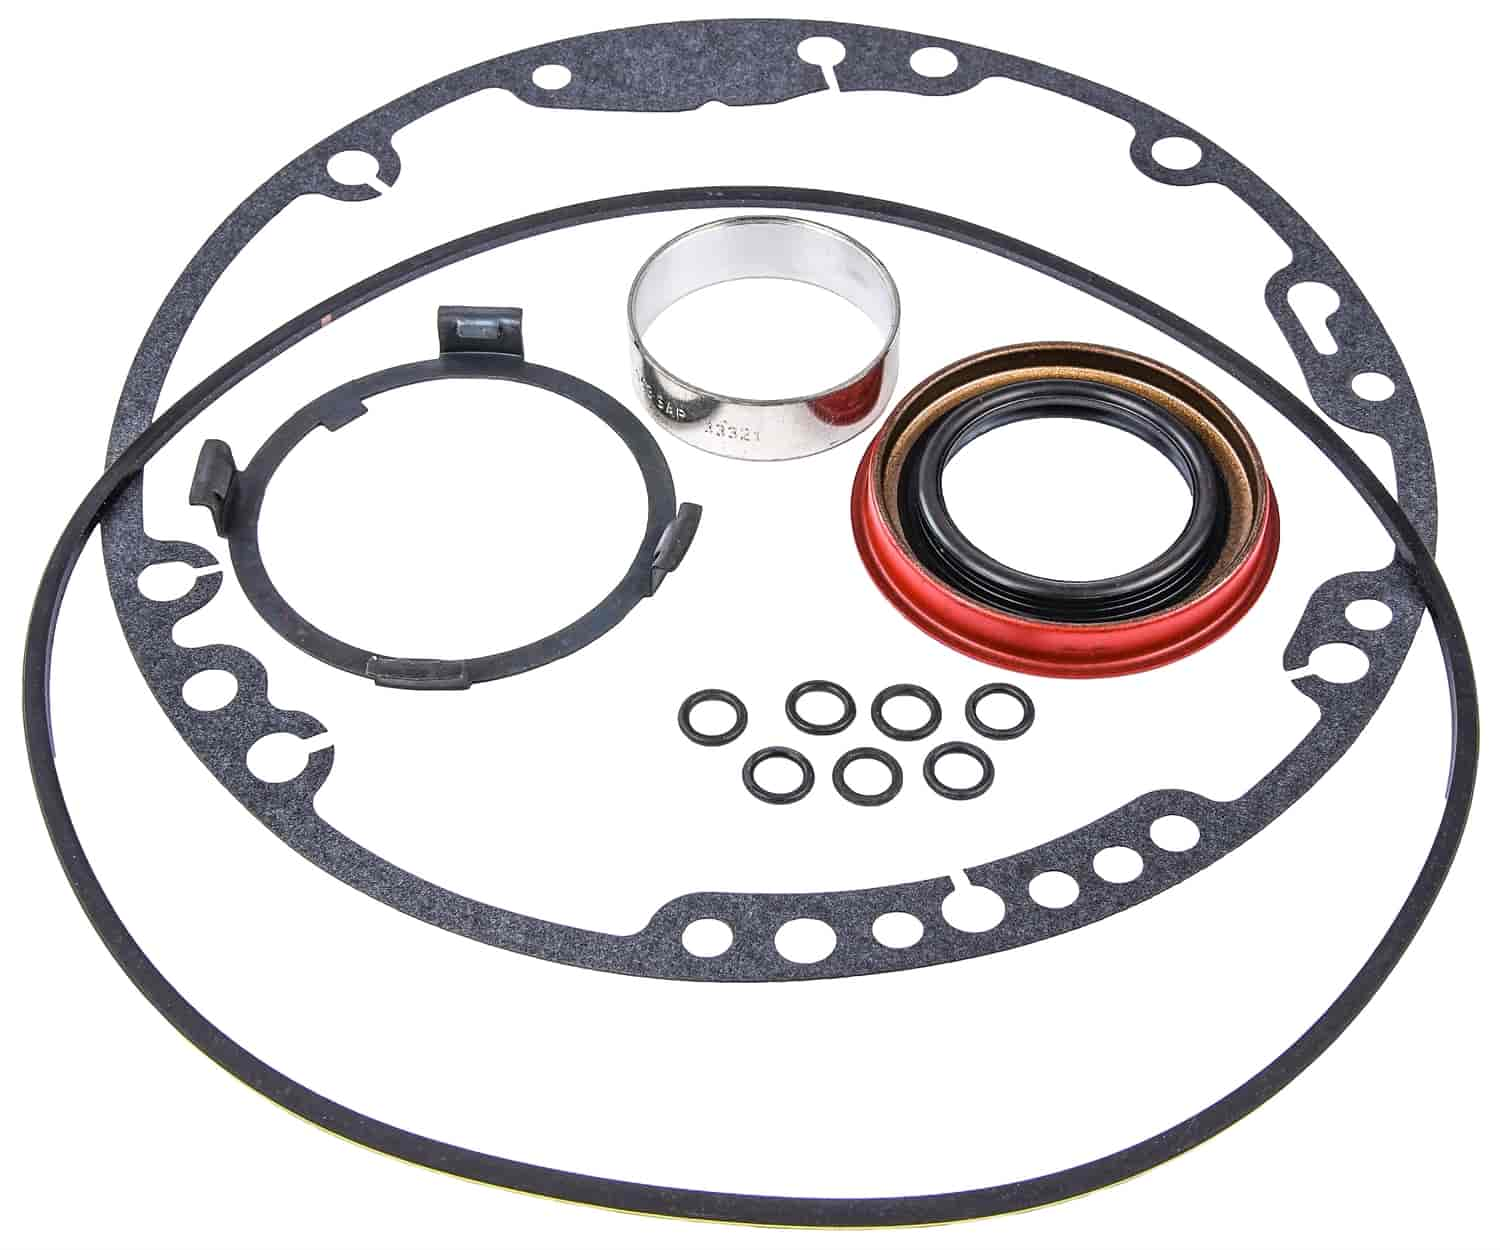 JEGS Front Pump Seal Kit for 1983-2003 GM TH700R4 and 4L60E